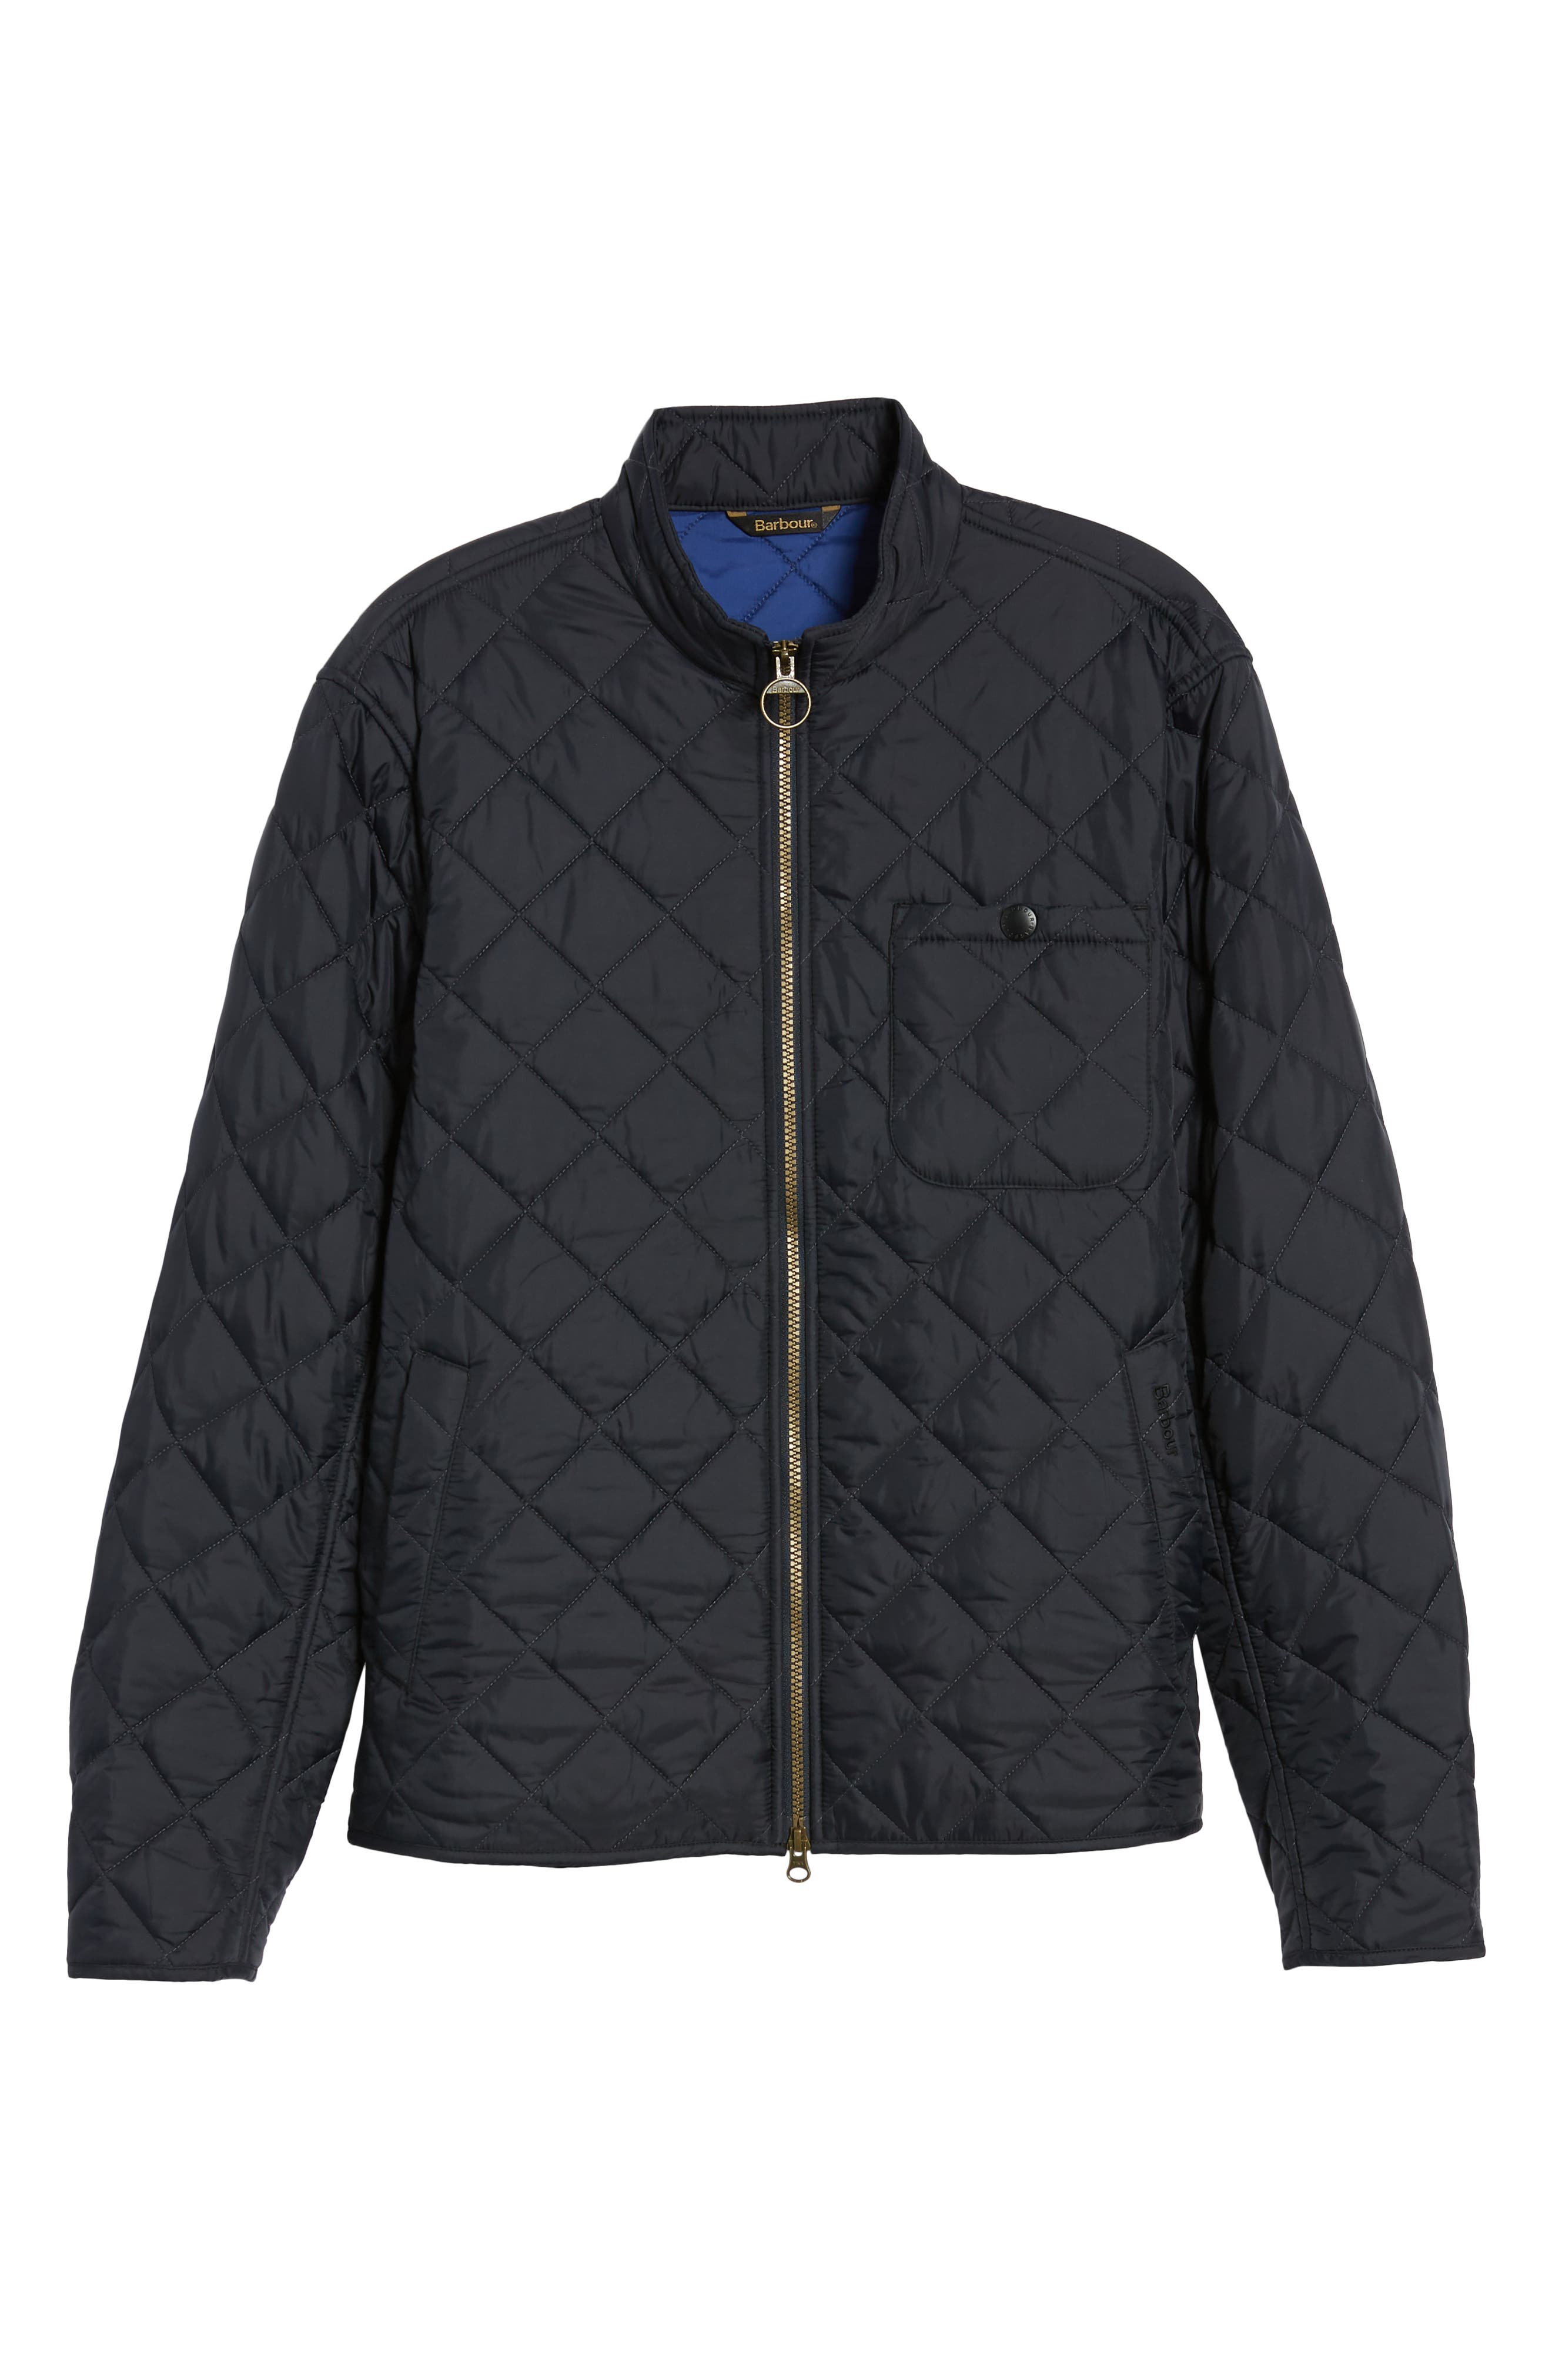 Pod Slim Fit Quilted Jacket,                             Alternate thumbnail 6, color,                             NAVY/ BLUE